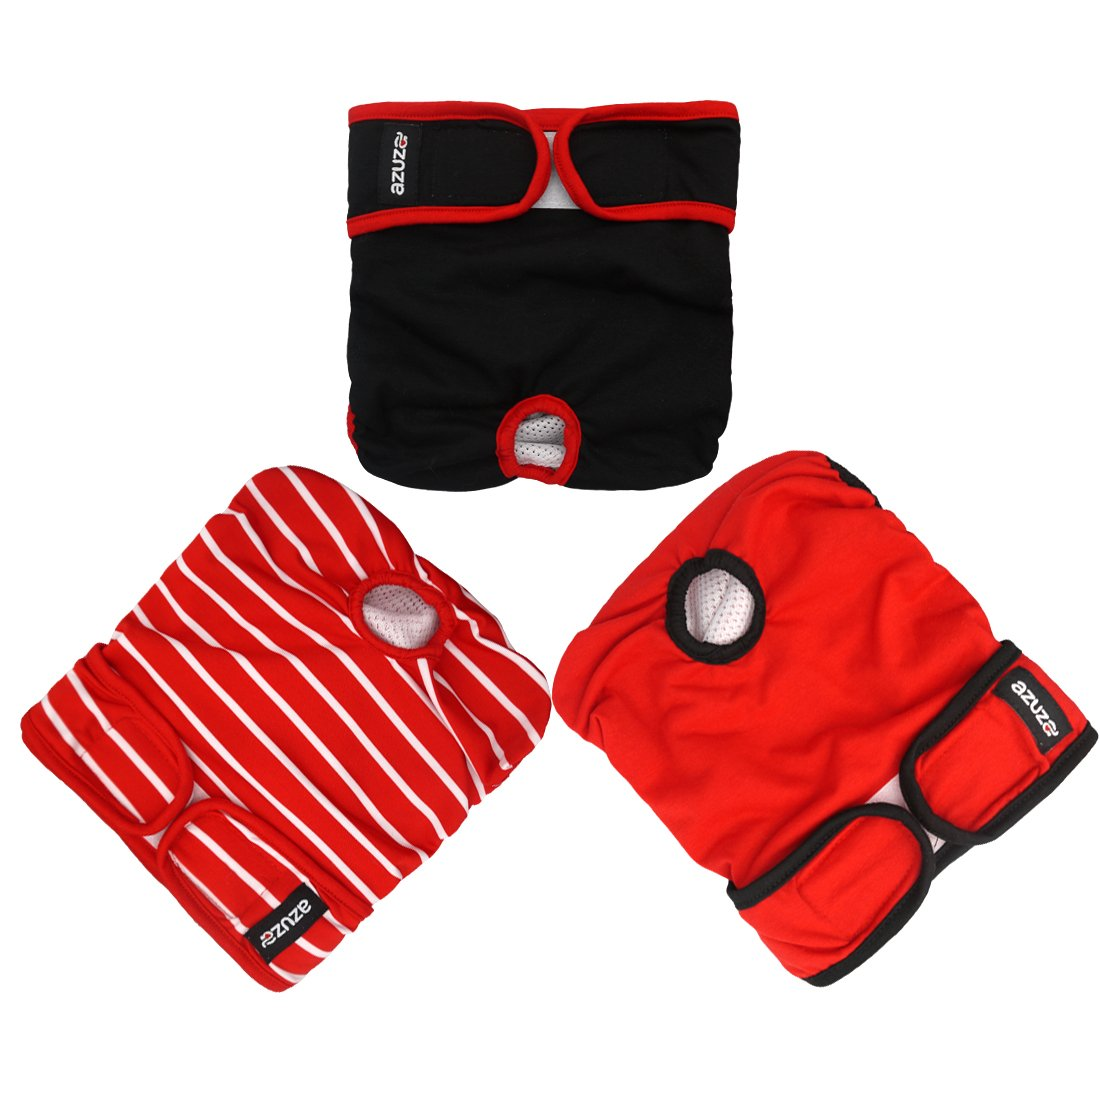 Red, Black, Stripe XS (Waist  8-11'') Red, Black, Stripe XS (Waist  8-11'') azuza Washable Dog Diapers (3 Pack) Reusable Sanitary Wraps Panties for Female and Male Pets Breathable with Inside Pocket Waist 8''-11  for Mini Dog Puppy